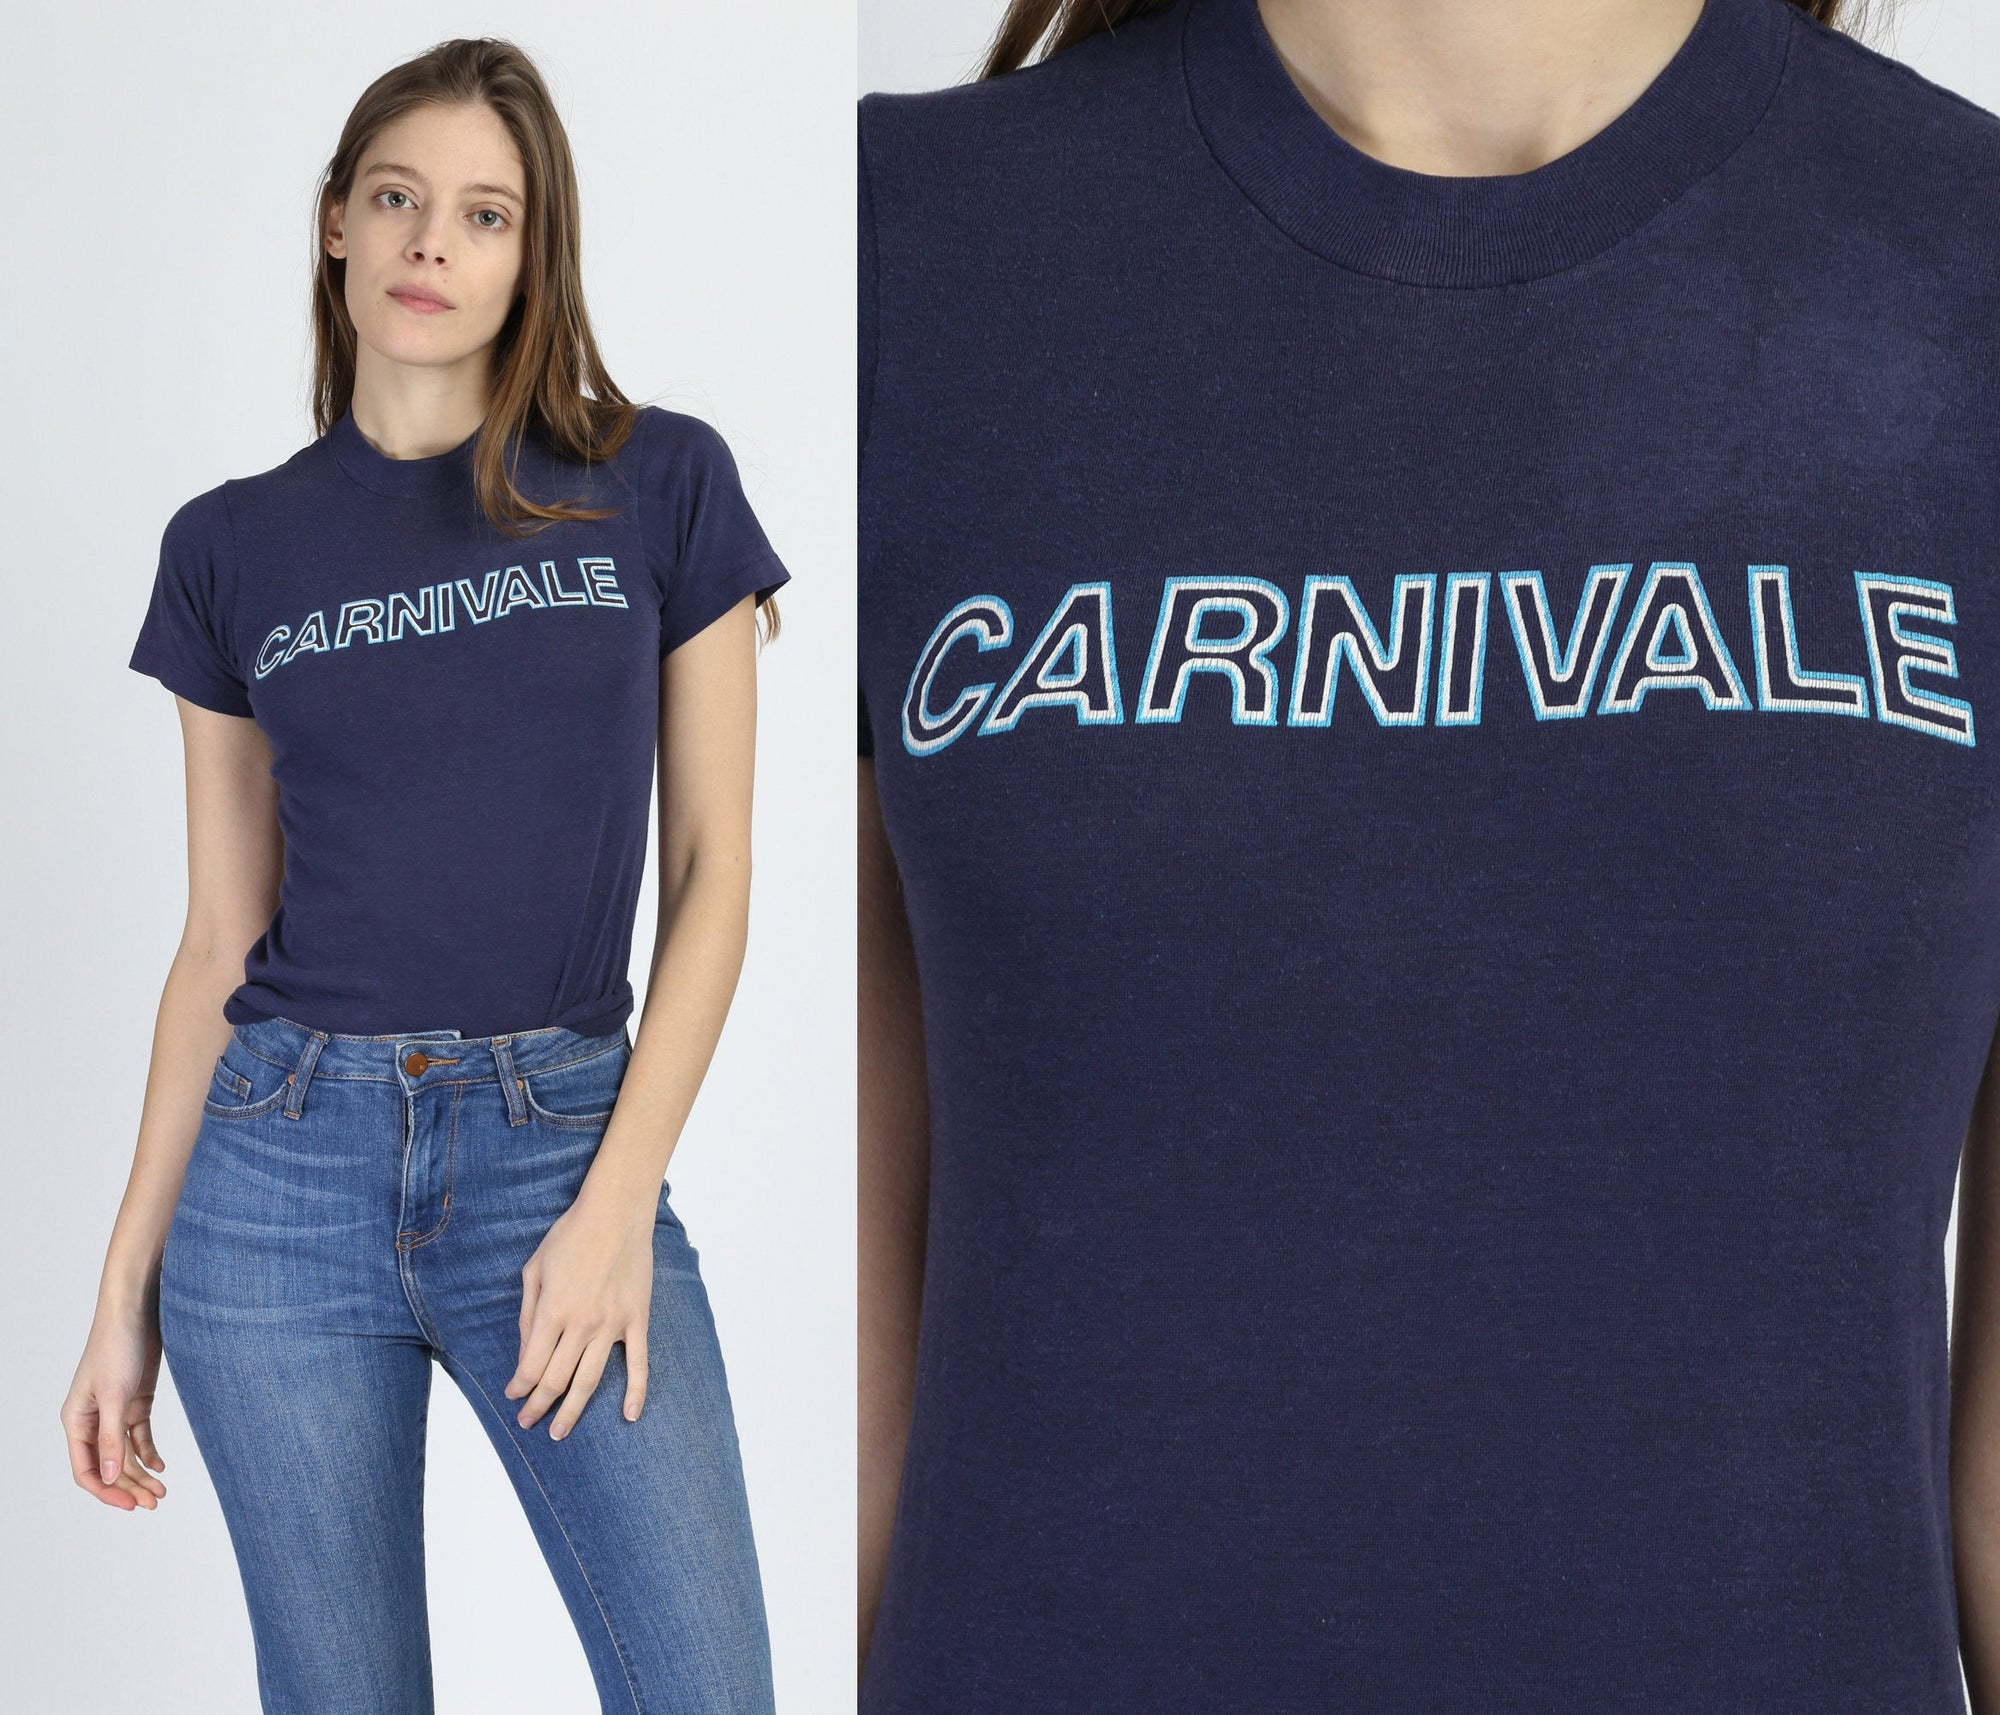 80s Carnivale T Shirt - Extra Small